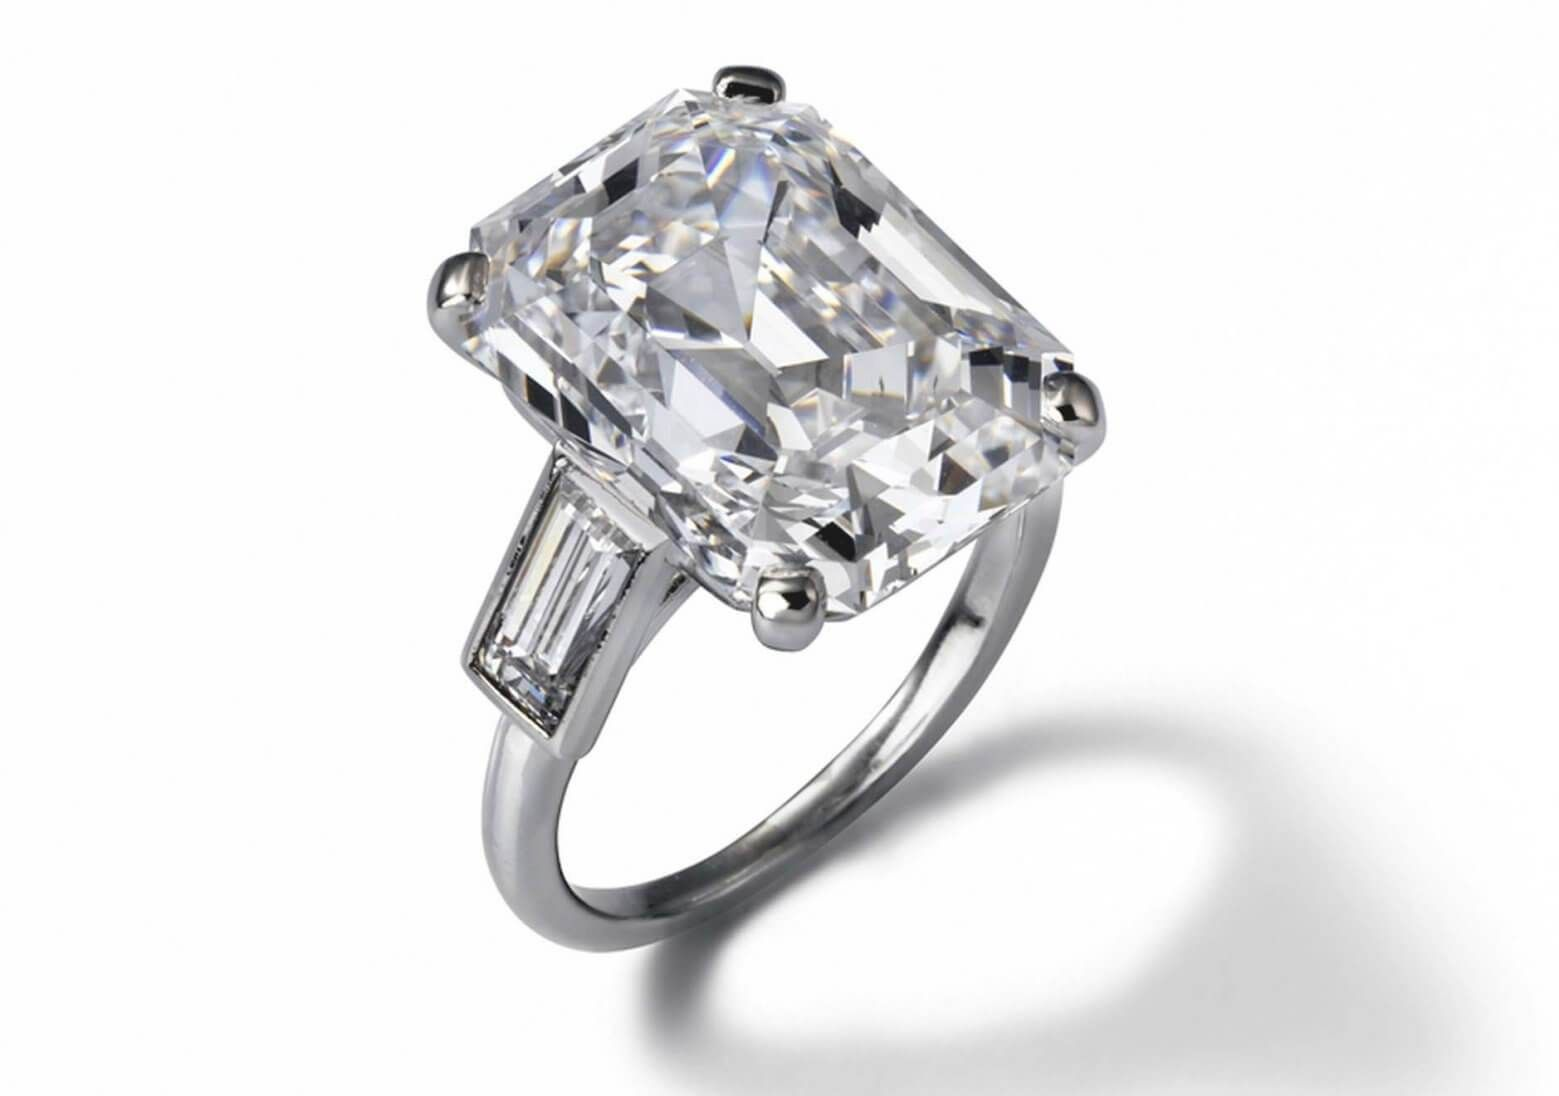 10 Carat Diamond Ring Cost Tags Wedding Rings Most Expensive With Best 30 E Grace Kelly Engagement Ring Platinum Diamond Engagement Rings 10 Carat Diamond Ring